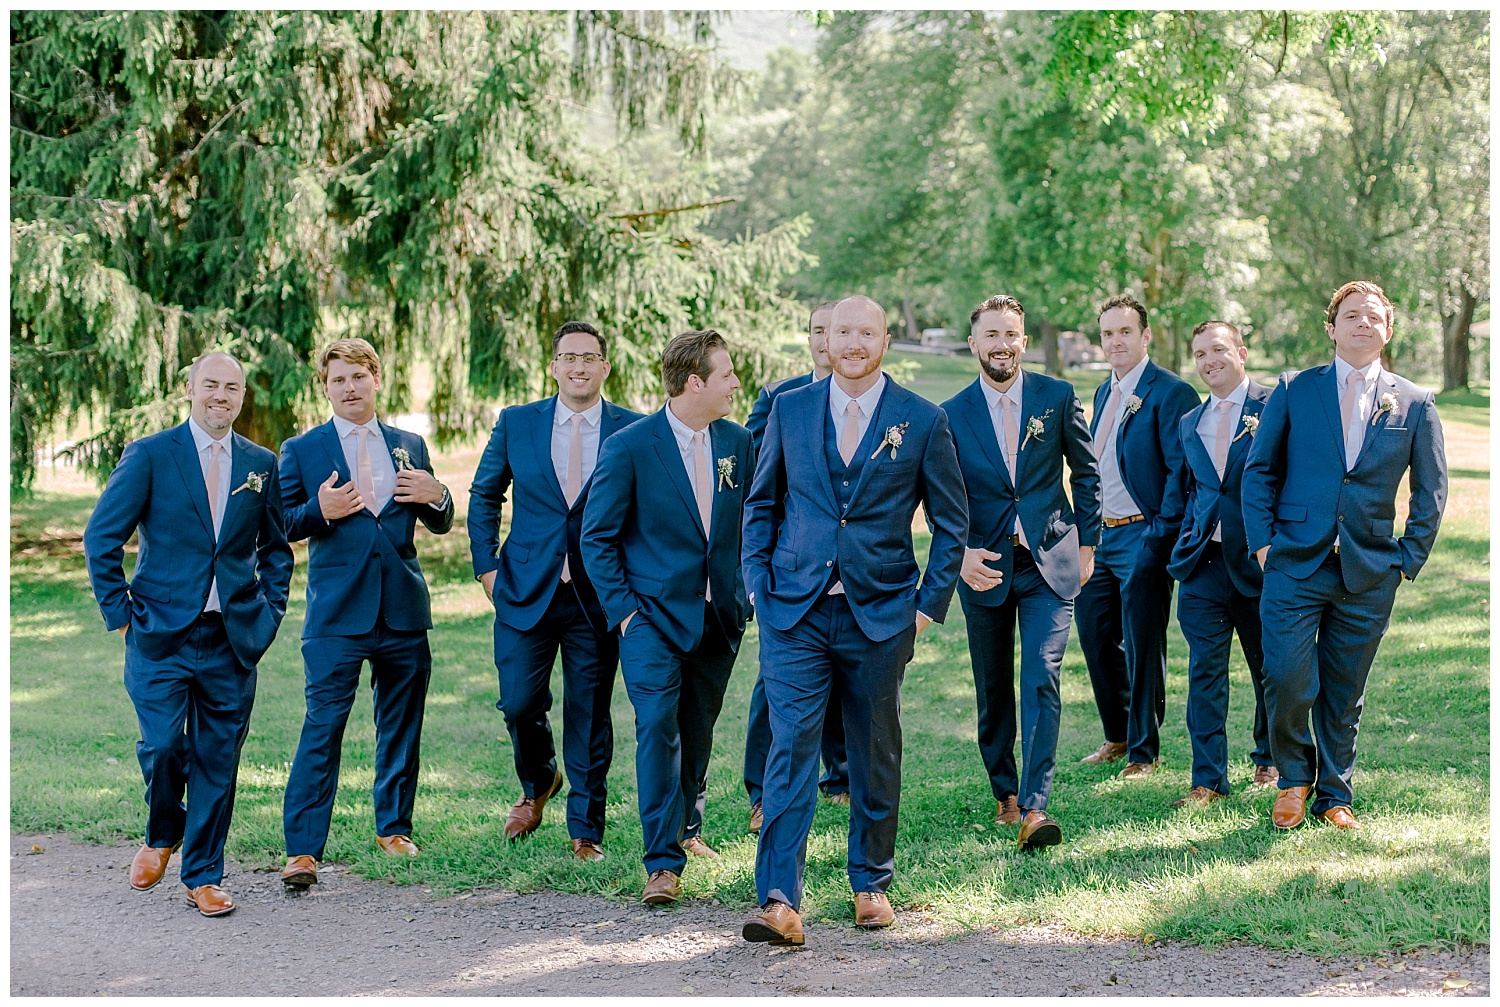 Navy and Blush pink inspired summertime whitewoods wedding in Northeastern Pennsylvania NEPA wapwallopen wedding venue by  PA based wedding and lifestyle photographer Lytle photography_0030.jpg